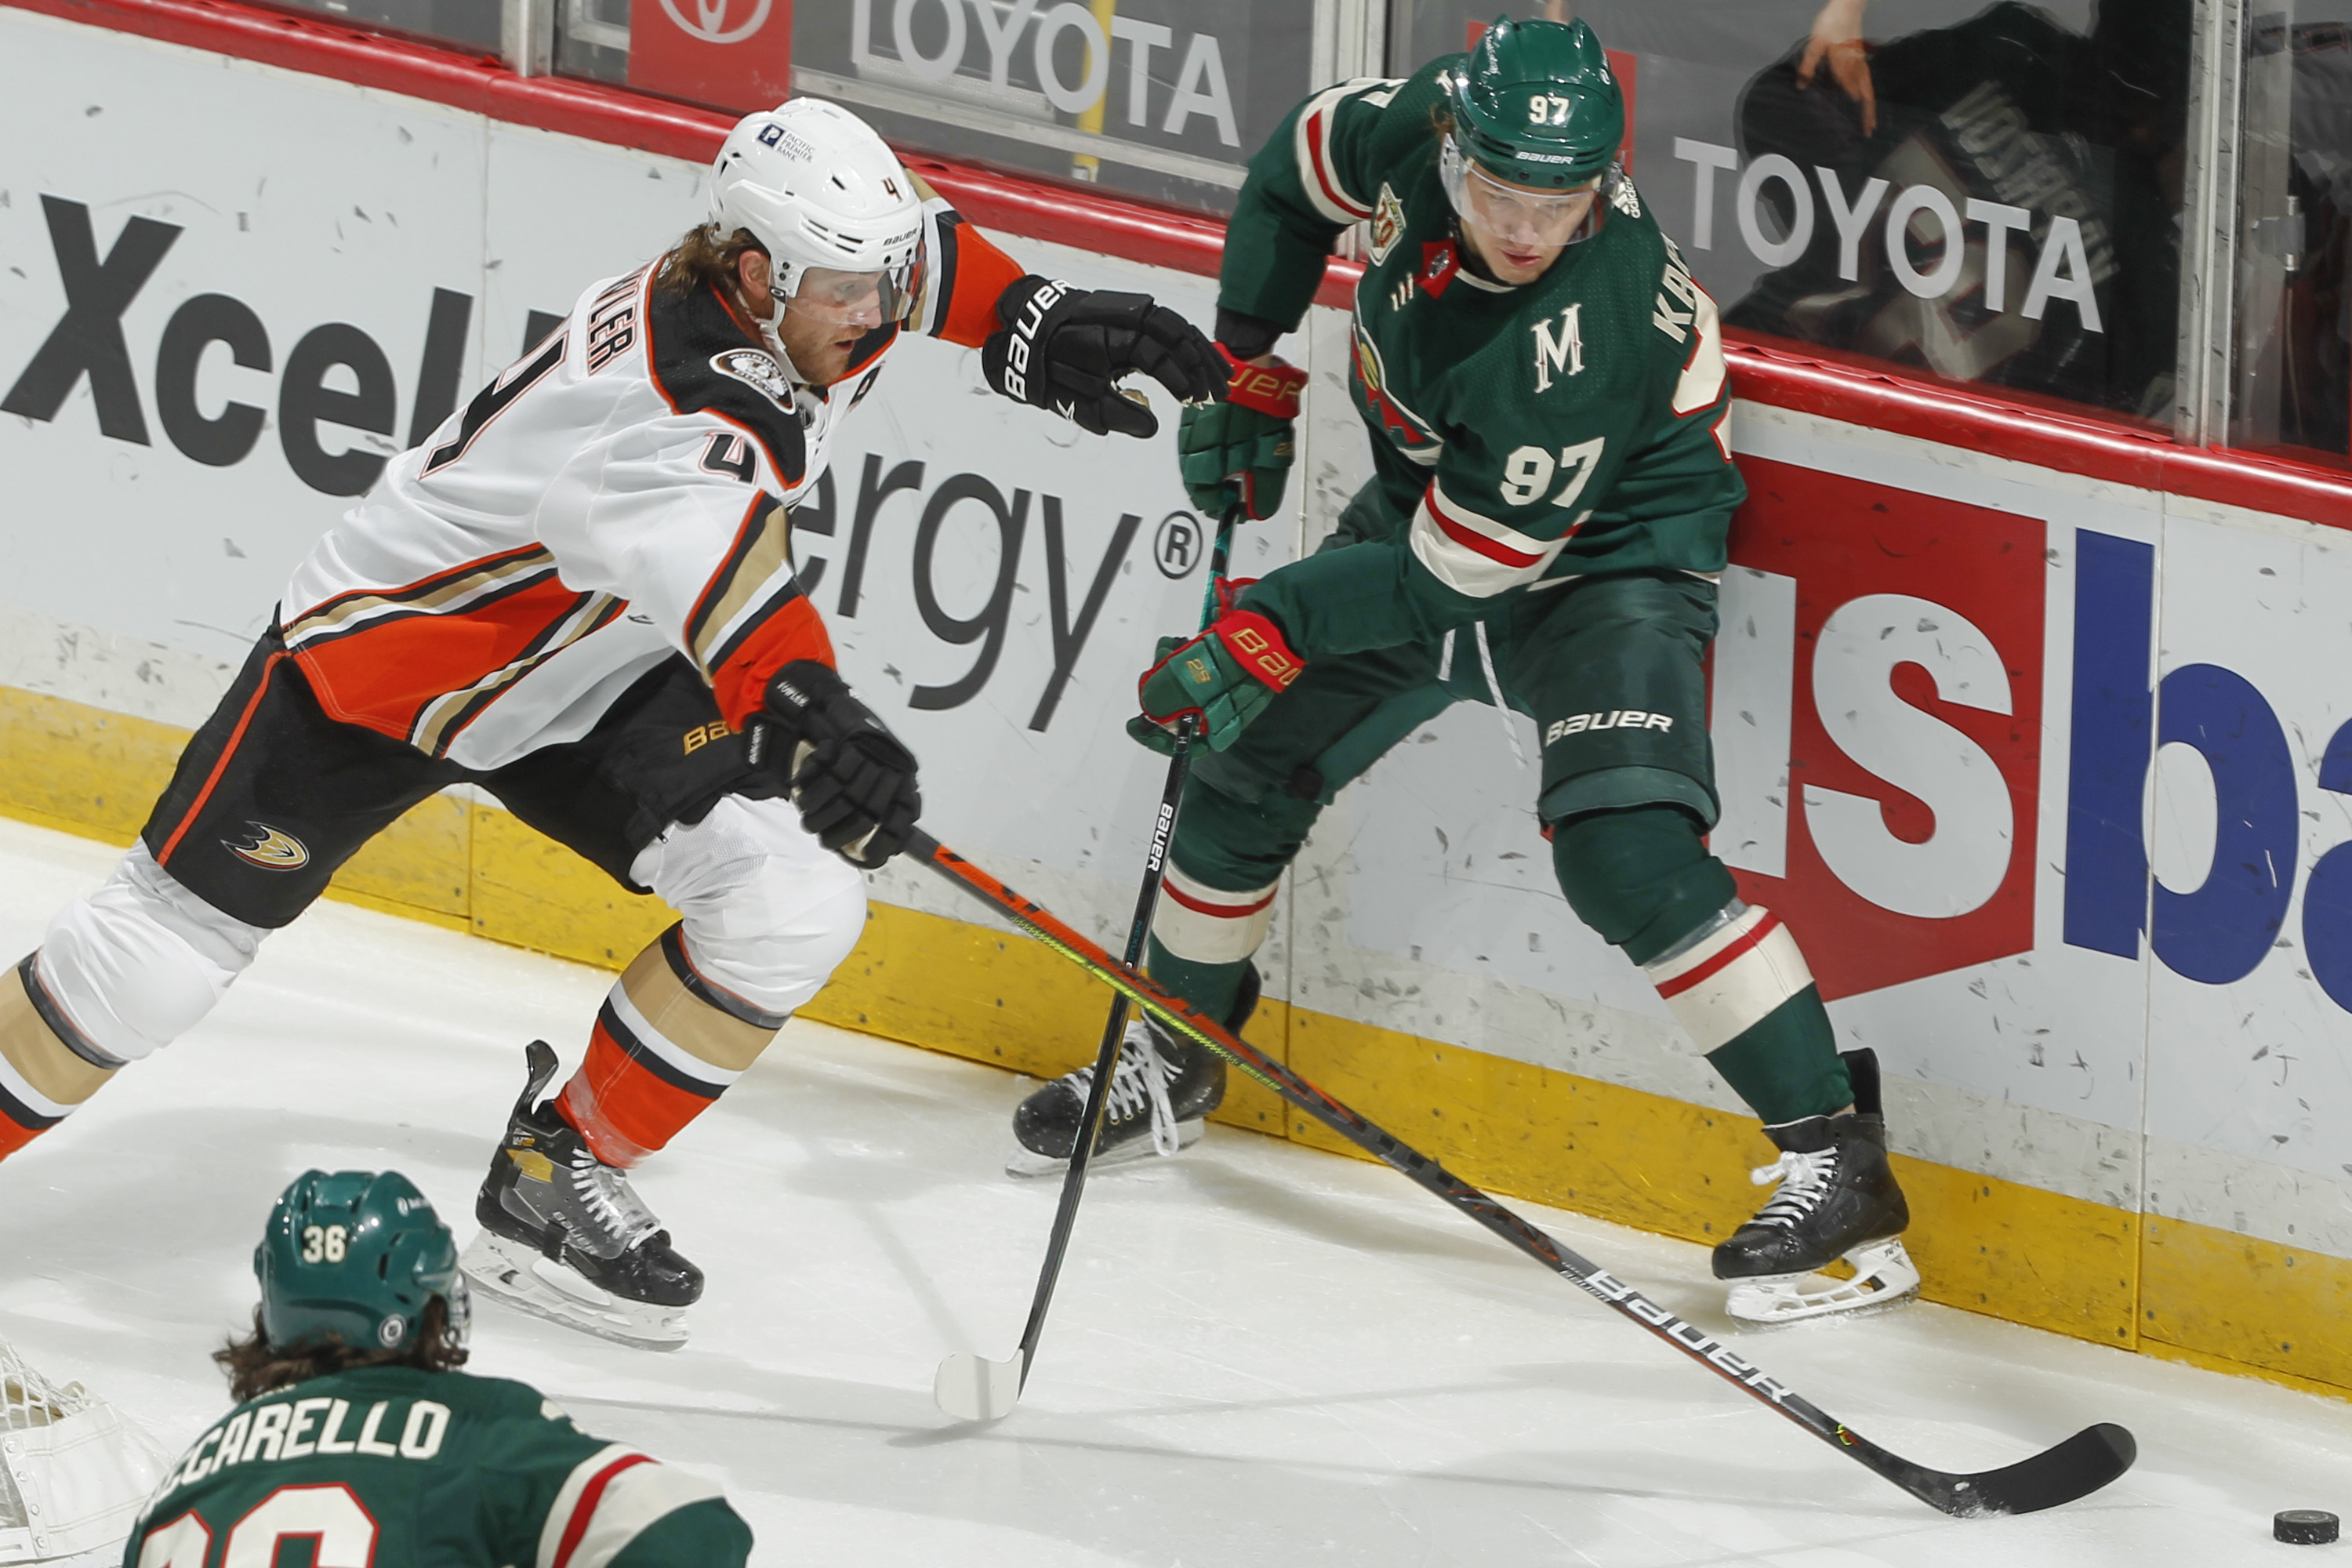 Cam Fowler #4 of the Anaheim Ducks and Kirill Kaprizov #97 of the Minnesota Wild battle for the puck during the game at the Xcel Energy Center on May 8, 2021 in Saint Paul, Minnesota.